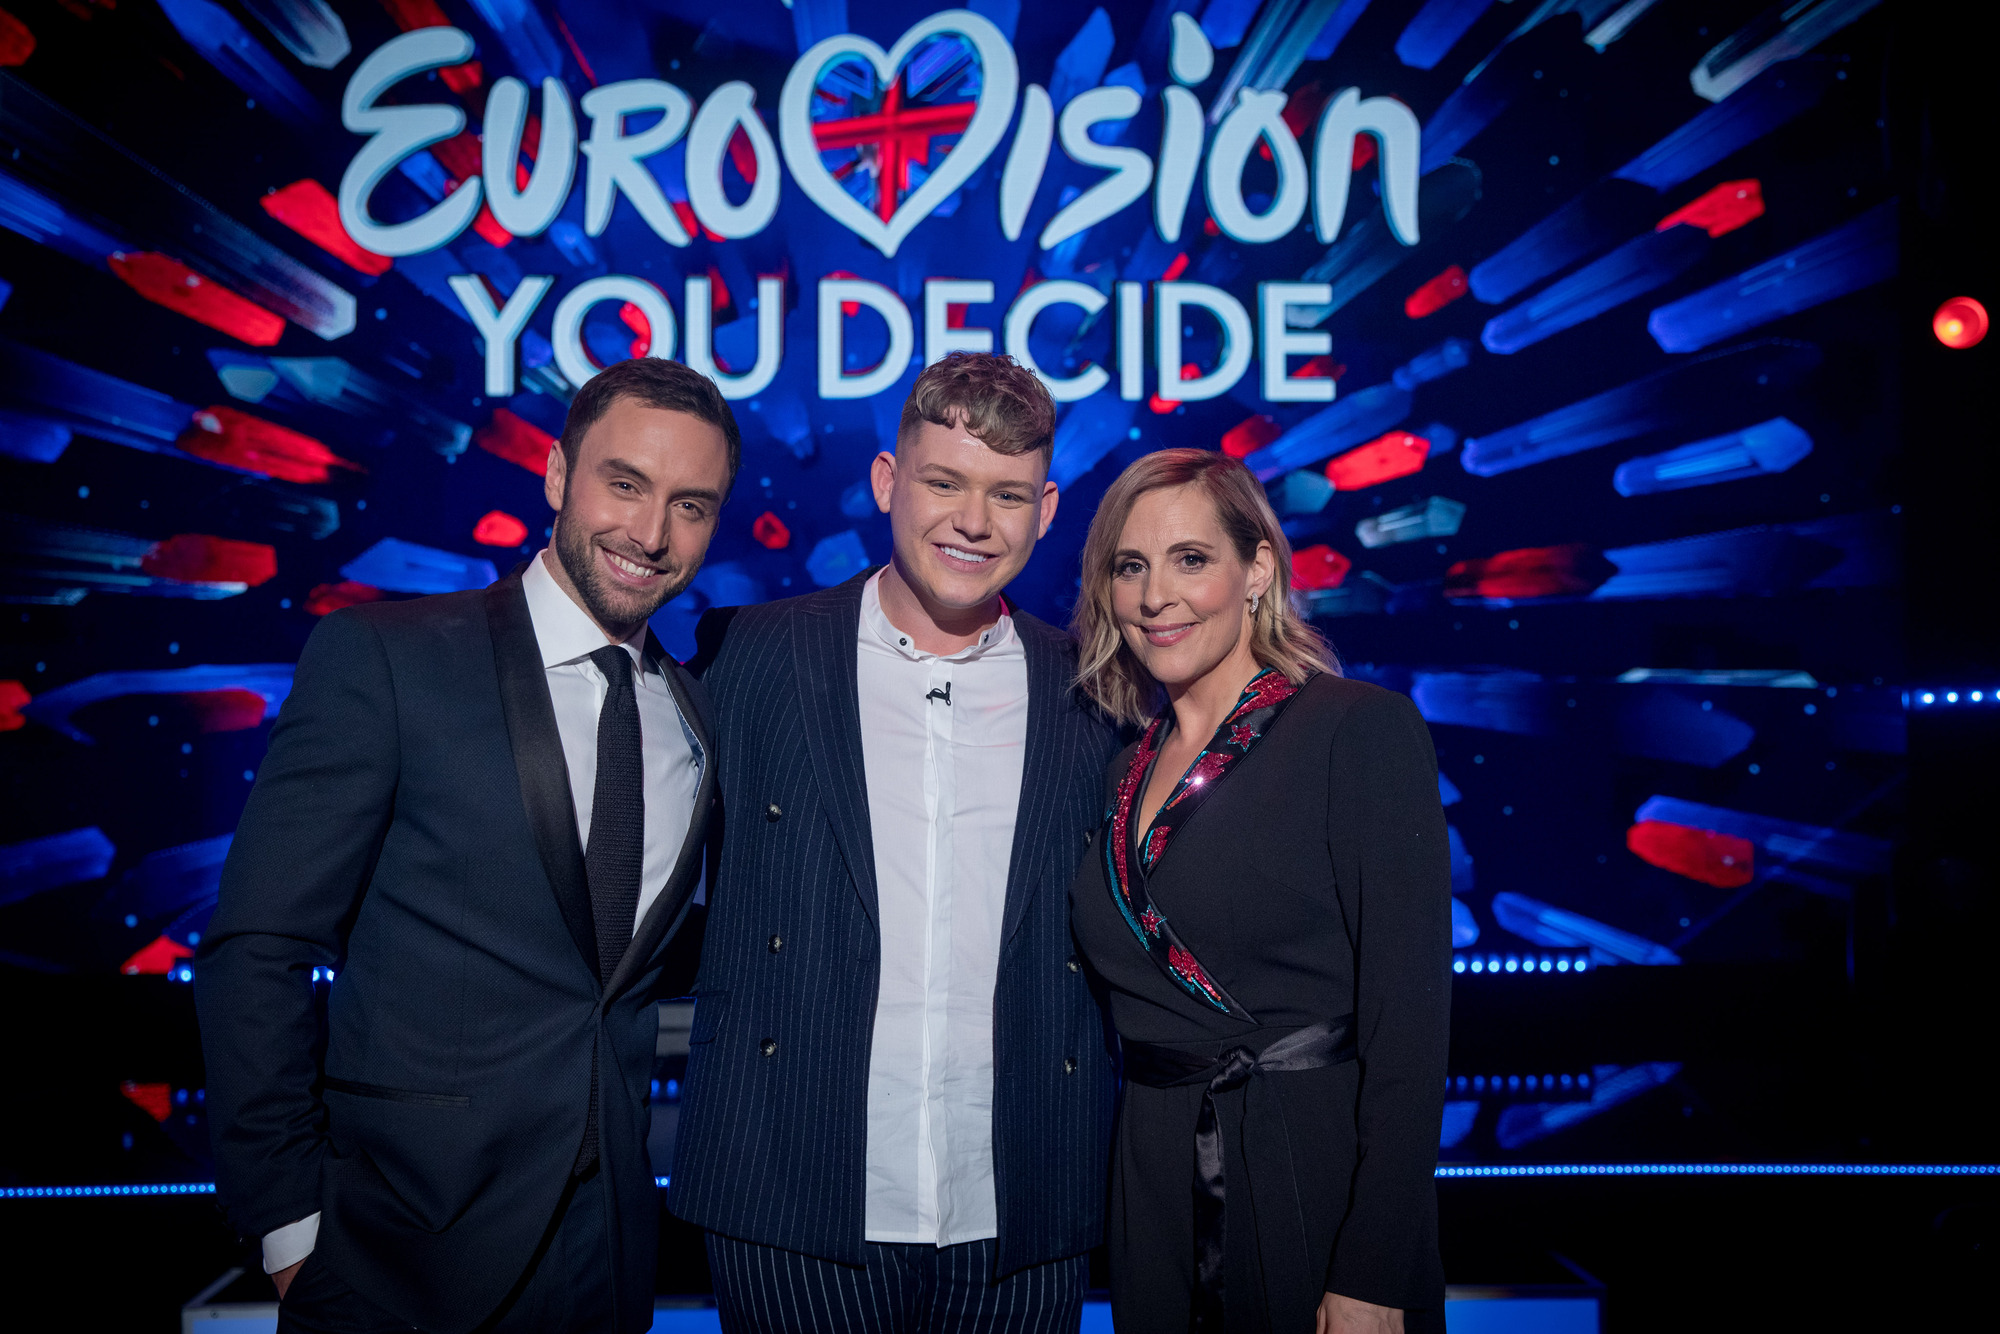 Mans Zelmerlow, Michael Rice and Mel Giedroyc for Eurovision: You Decide